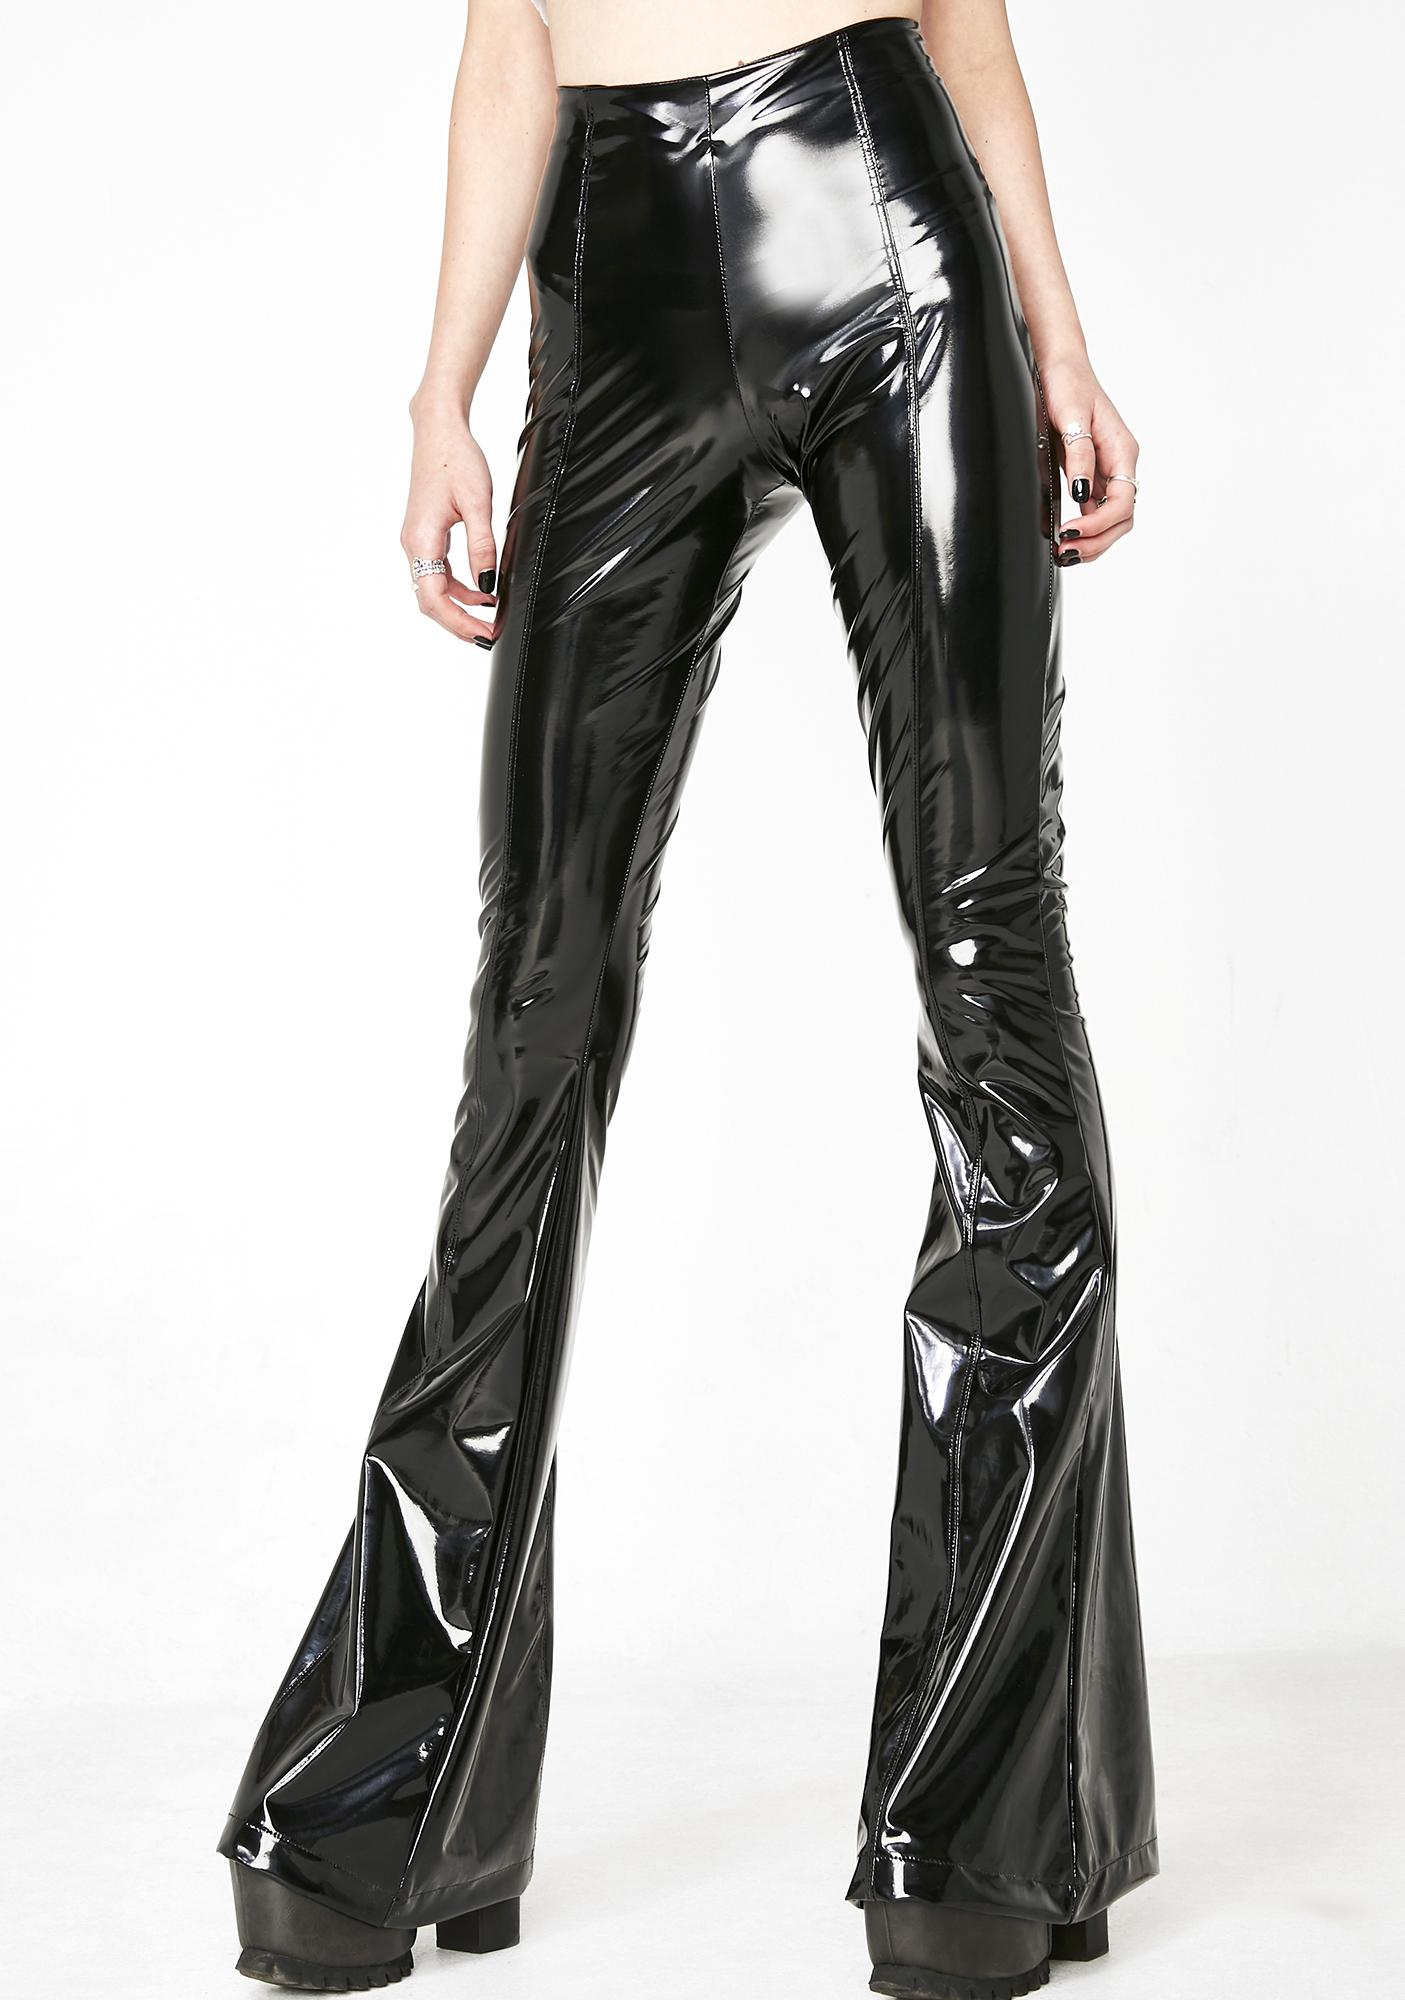 Grayscale PVC Flare Pants